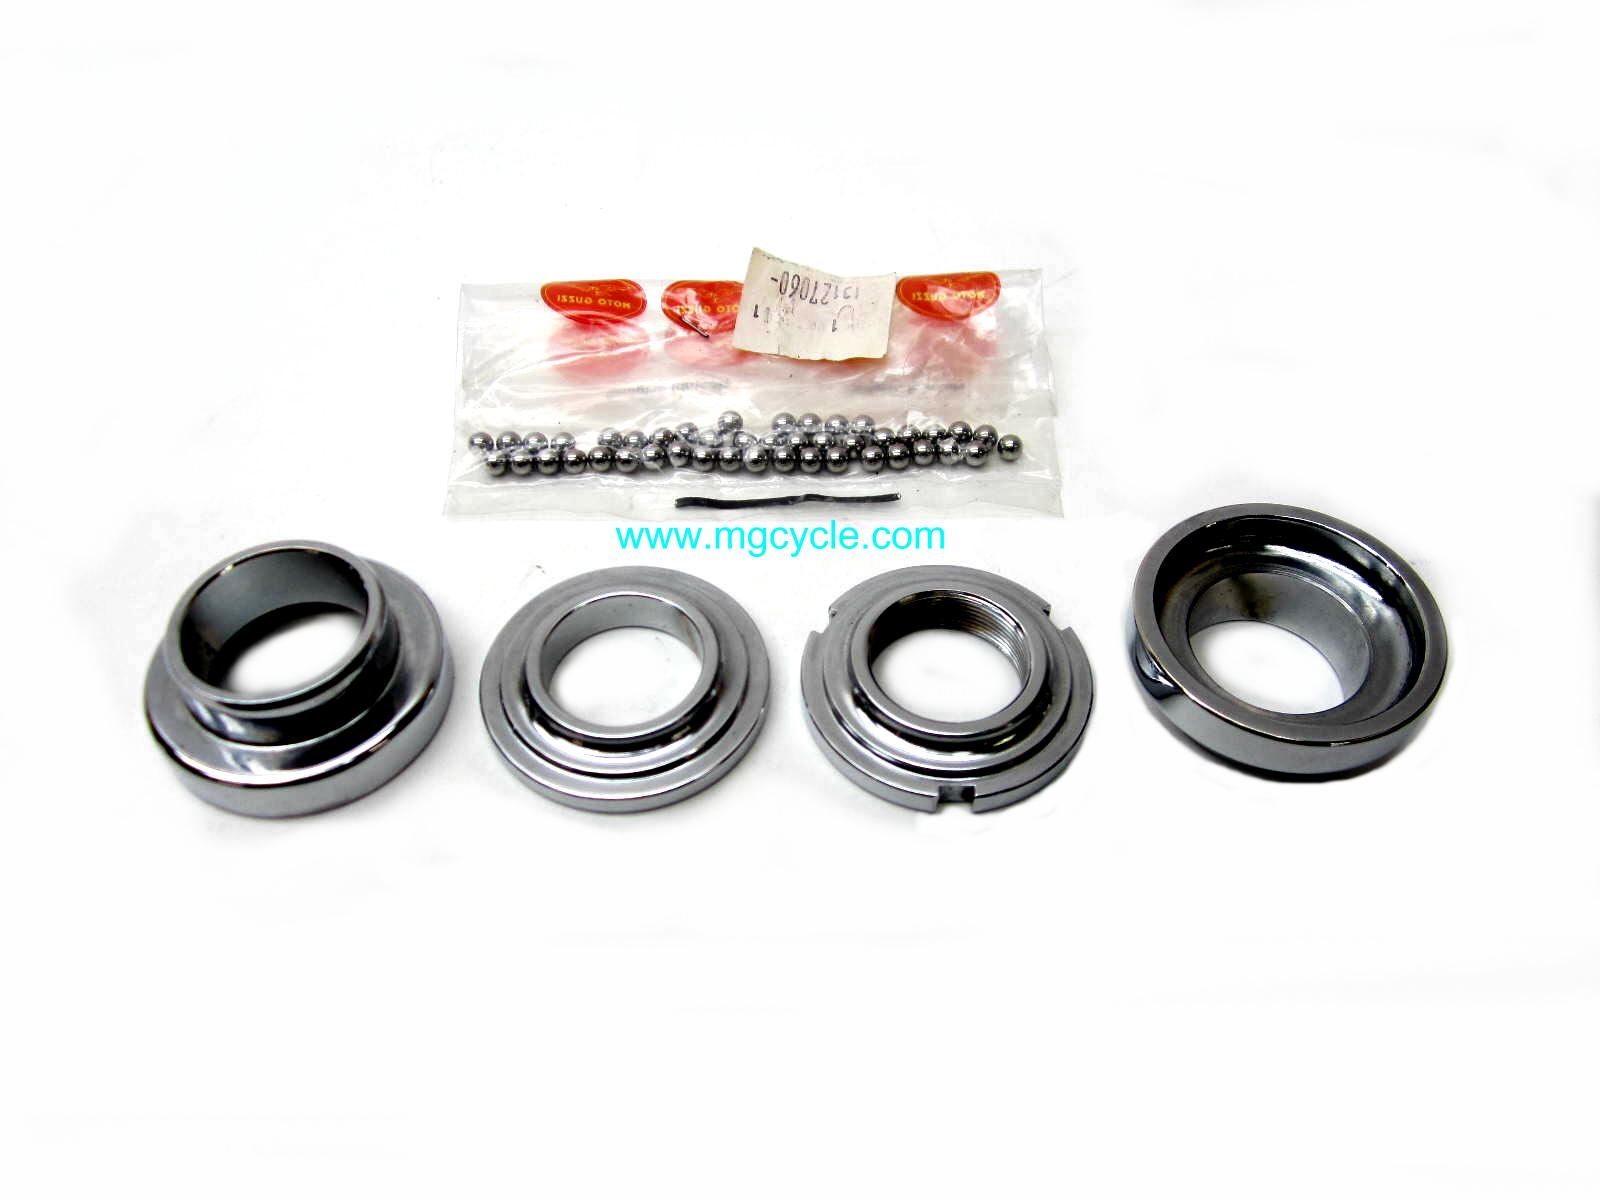 Steering head bearing kit with balls and races V50 V65